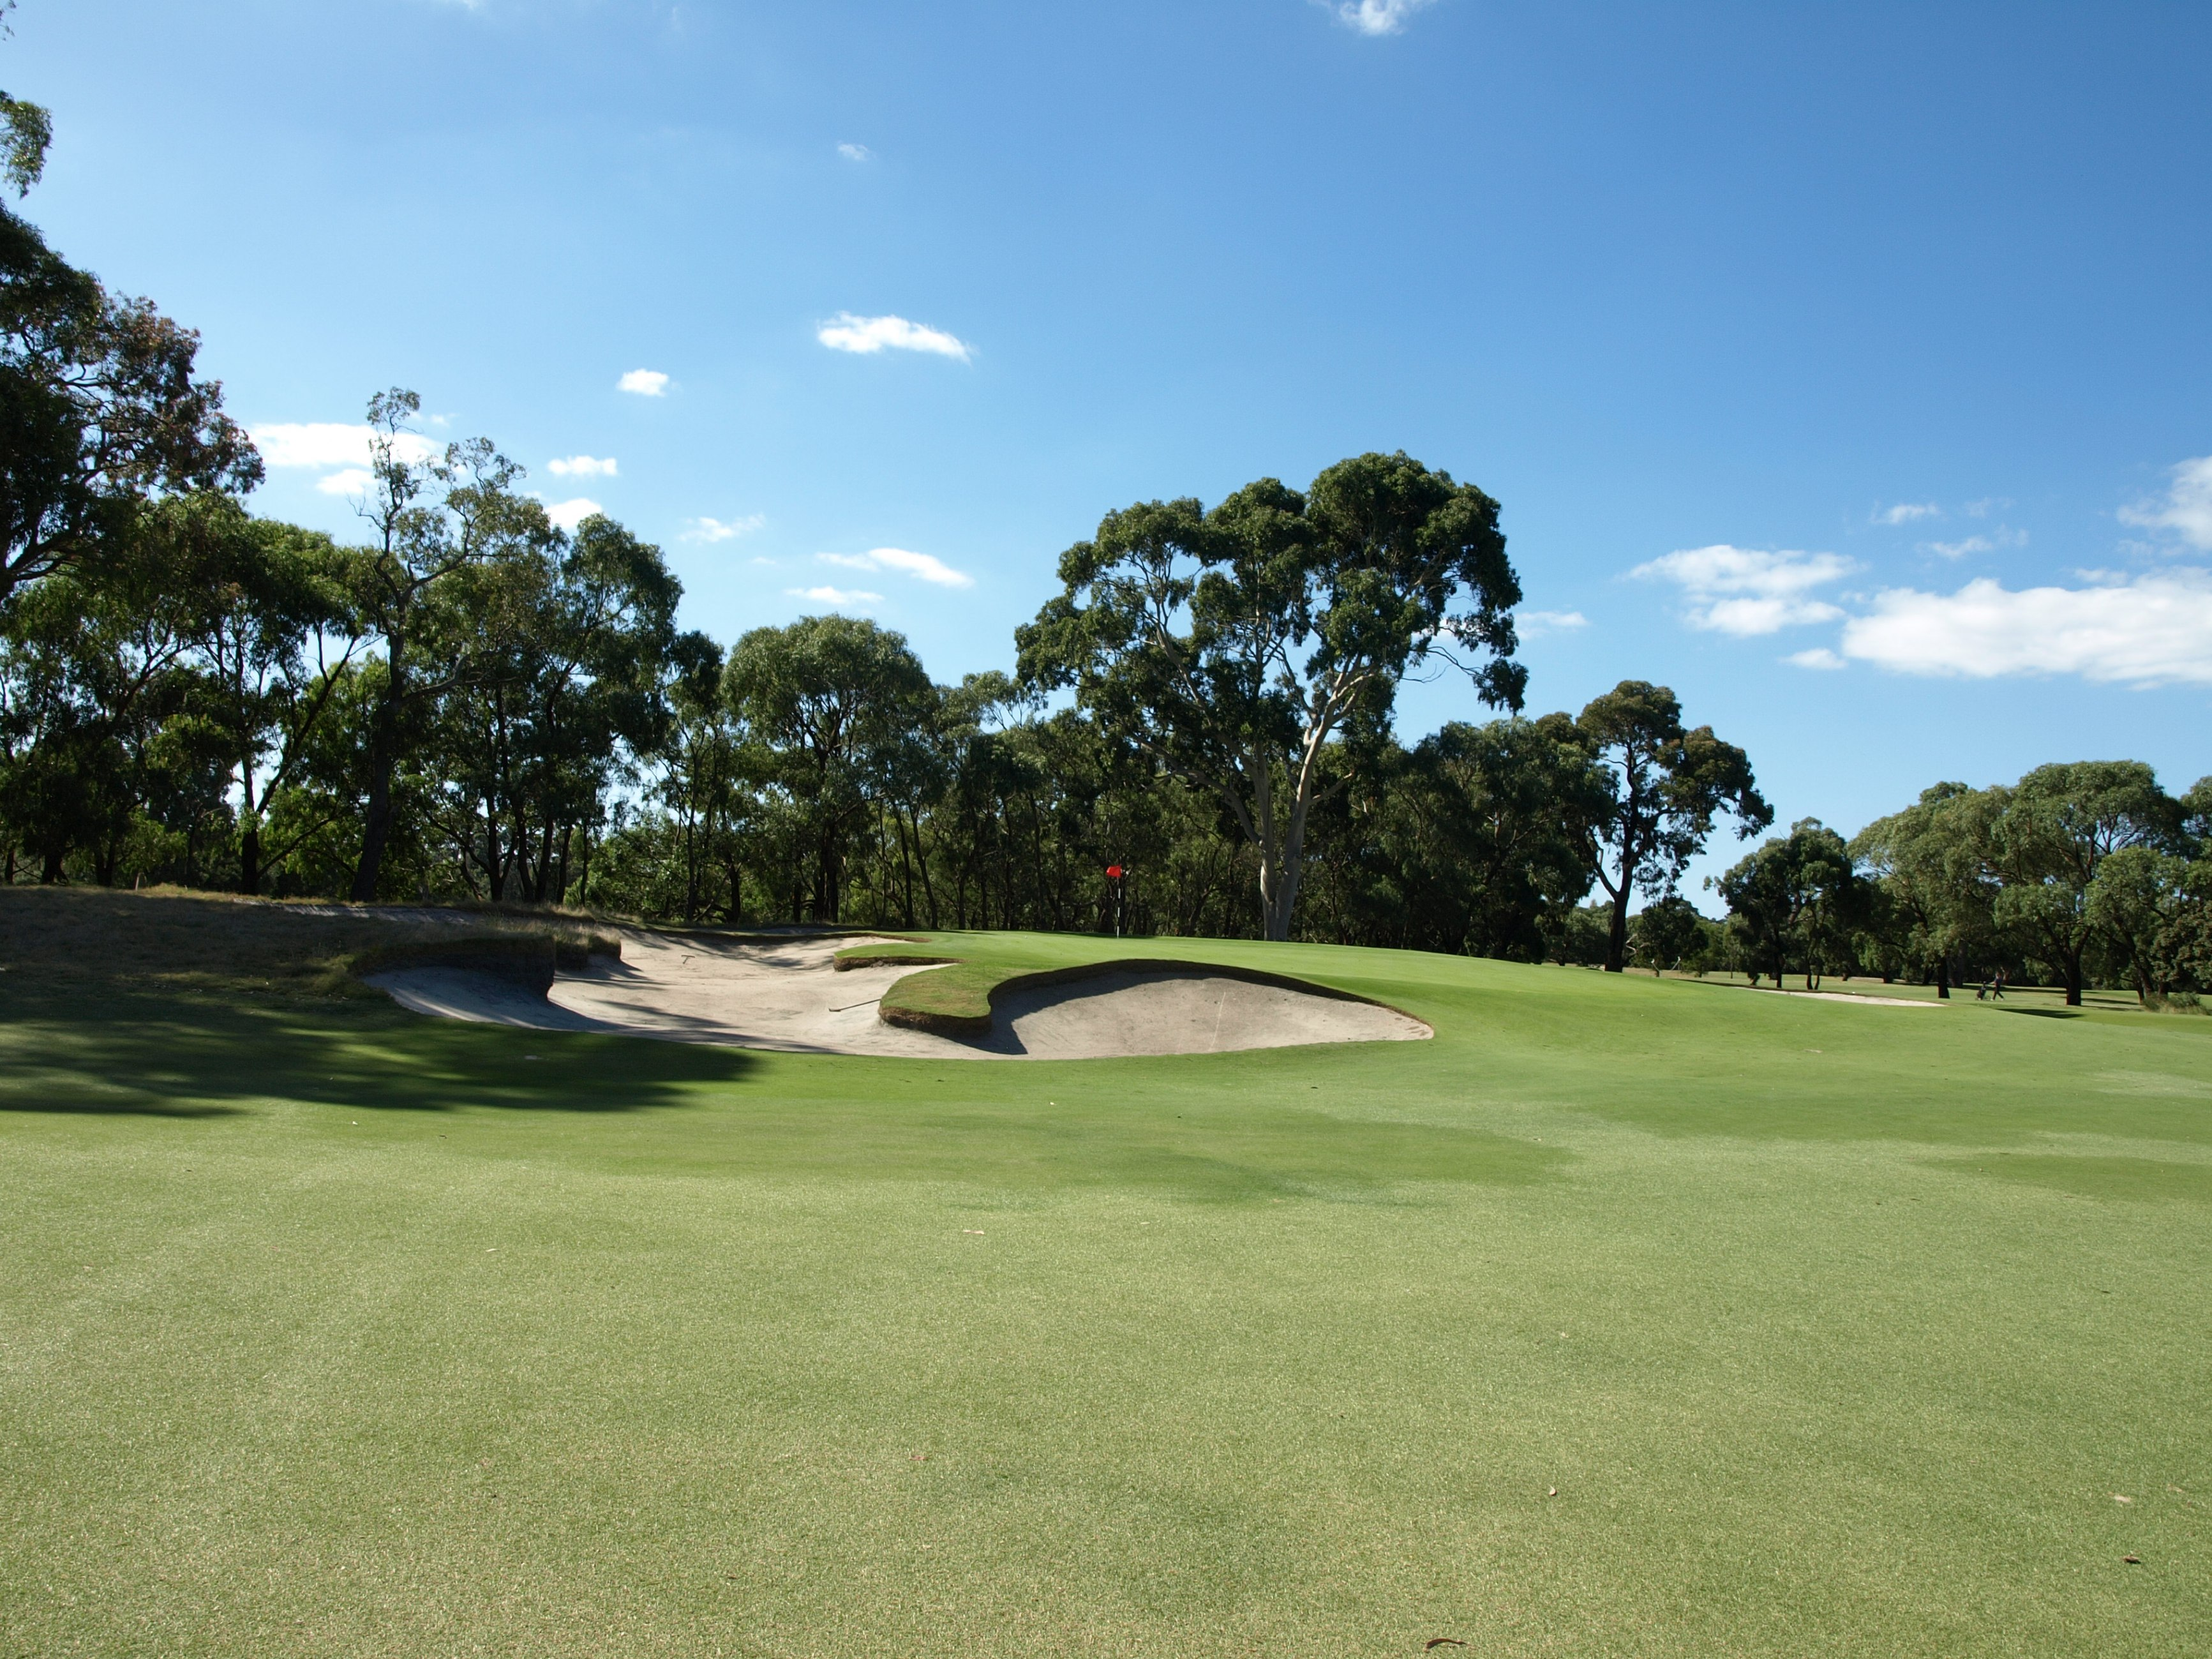 The 10th fairway at Long Island Country Club